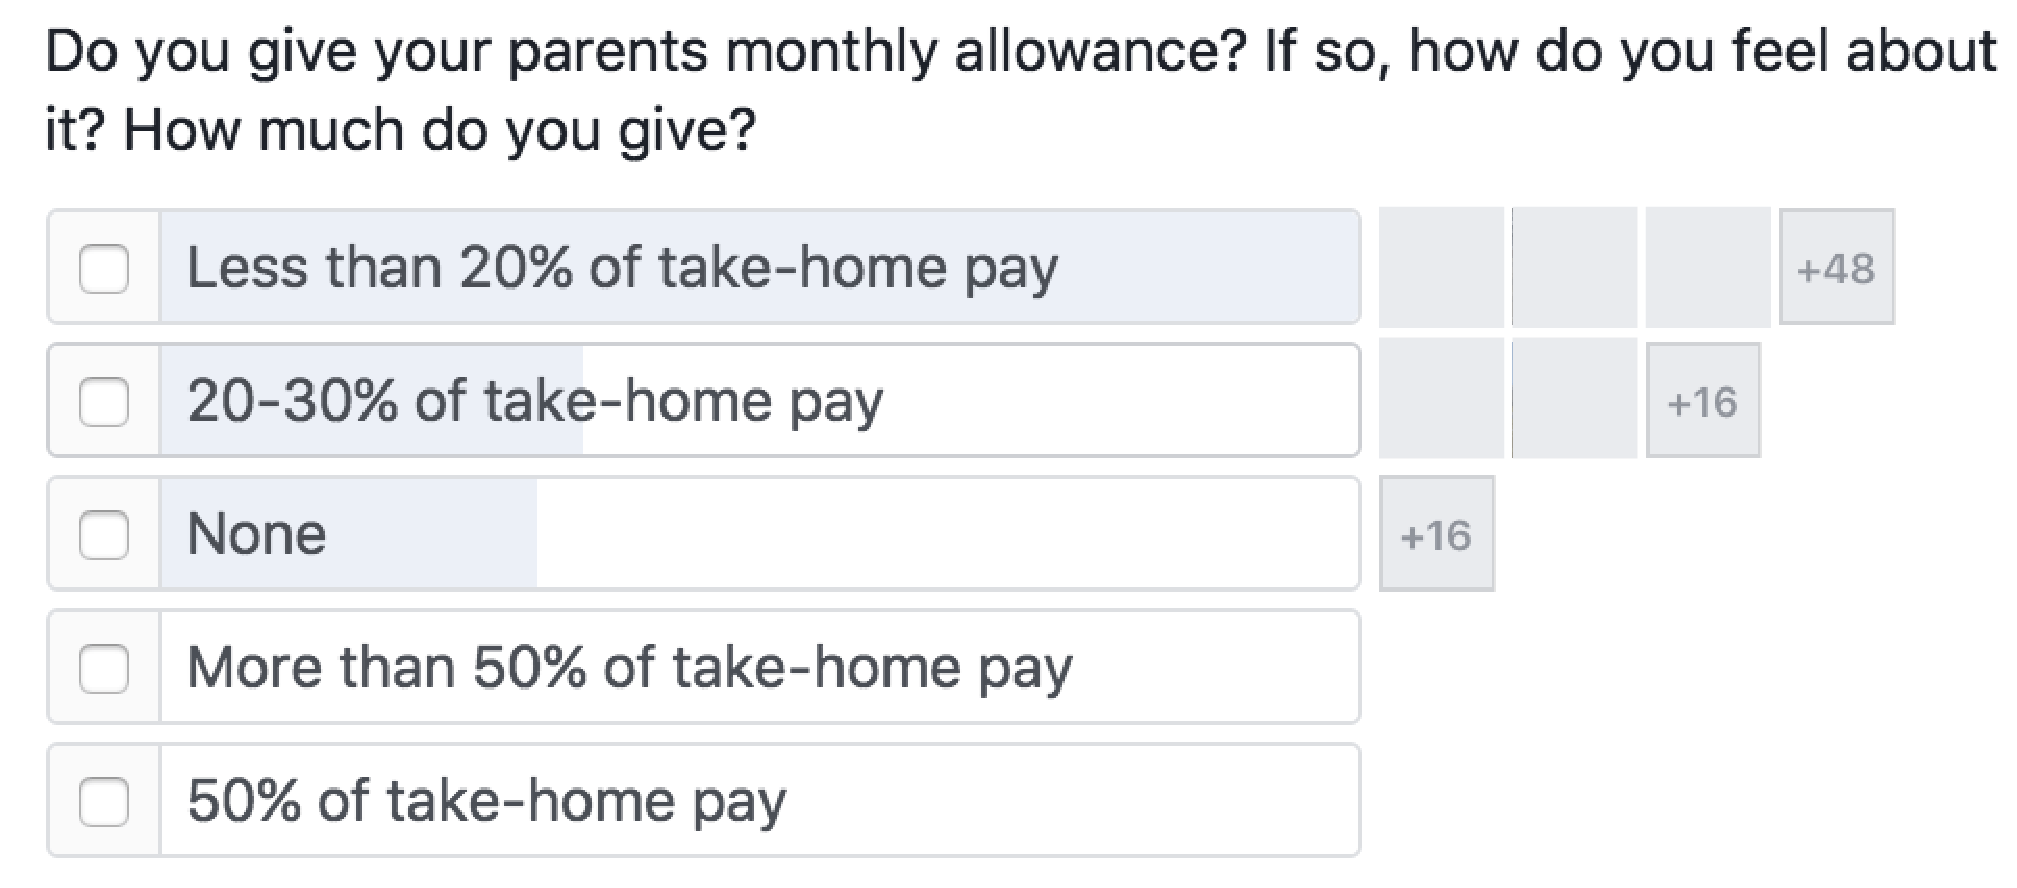 Recommended Ways To Give Your Parents Monthly Allowance